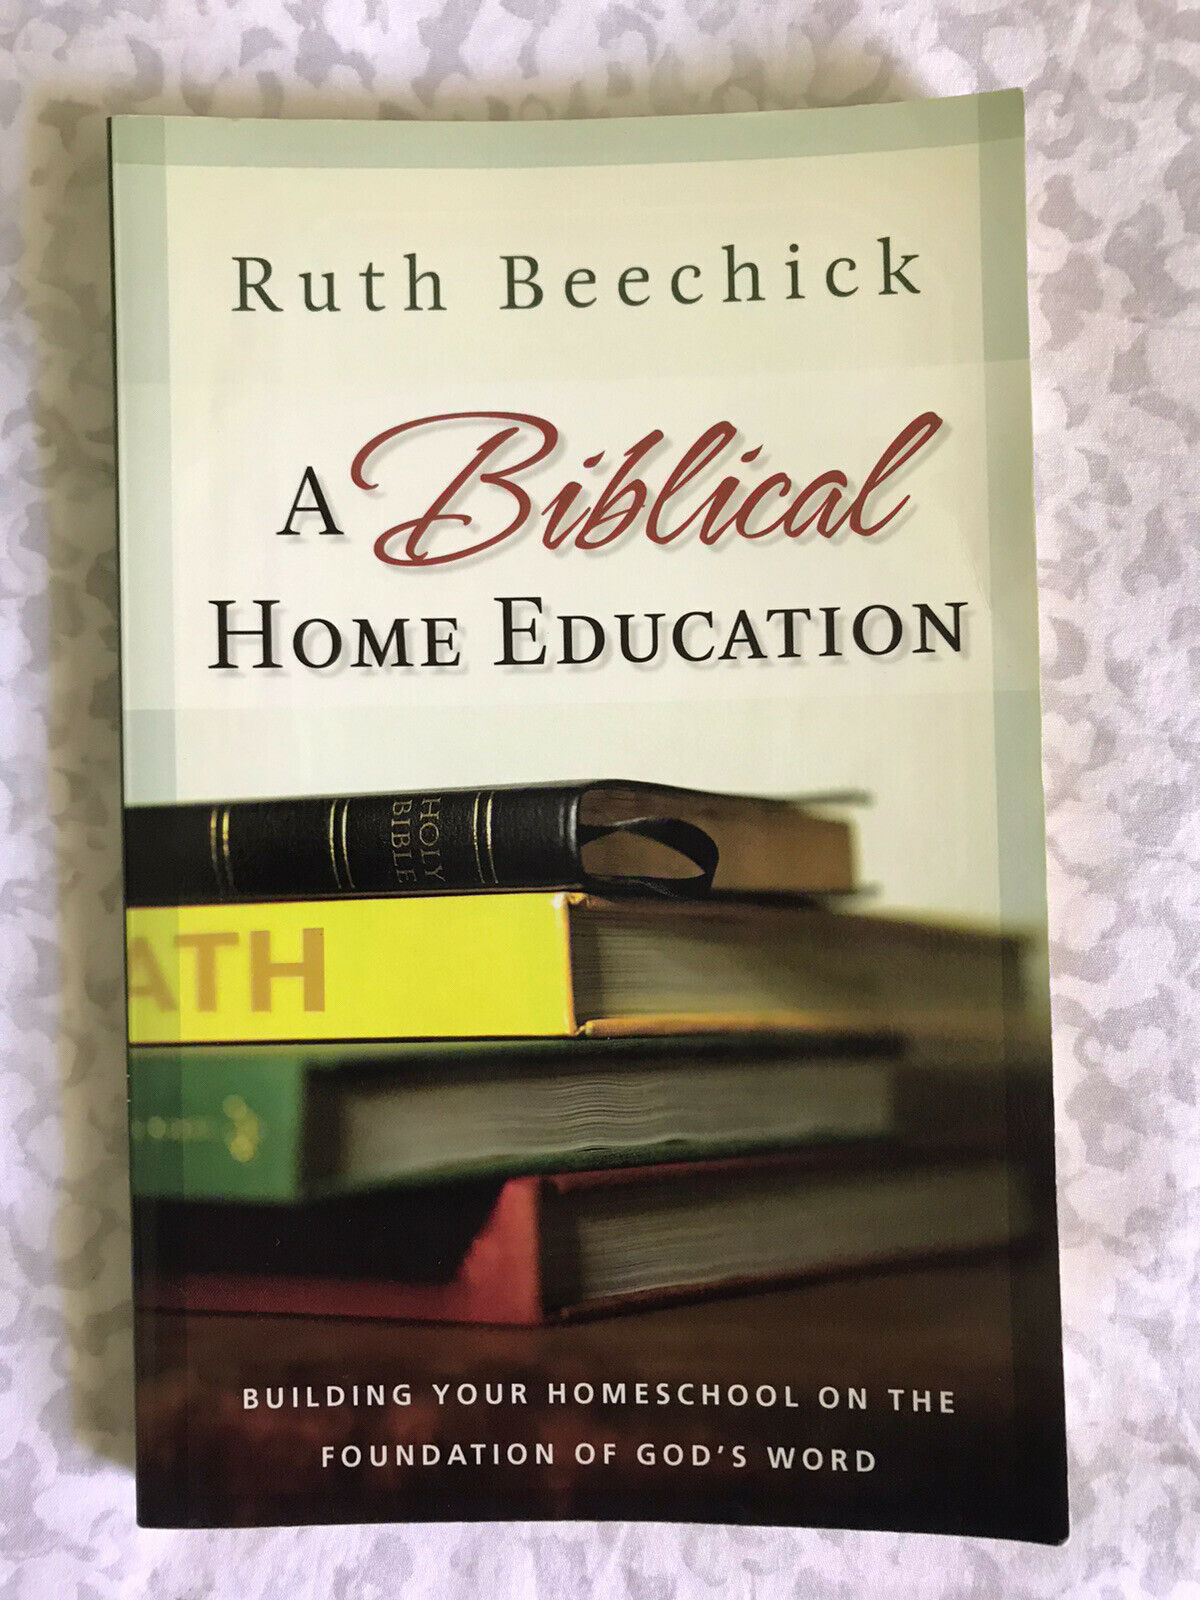 A Biblical Home Education:Building Your Homeschool on the Founda (Ruth Beechick) 2